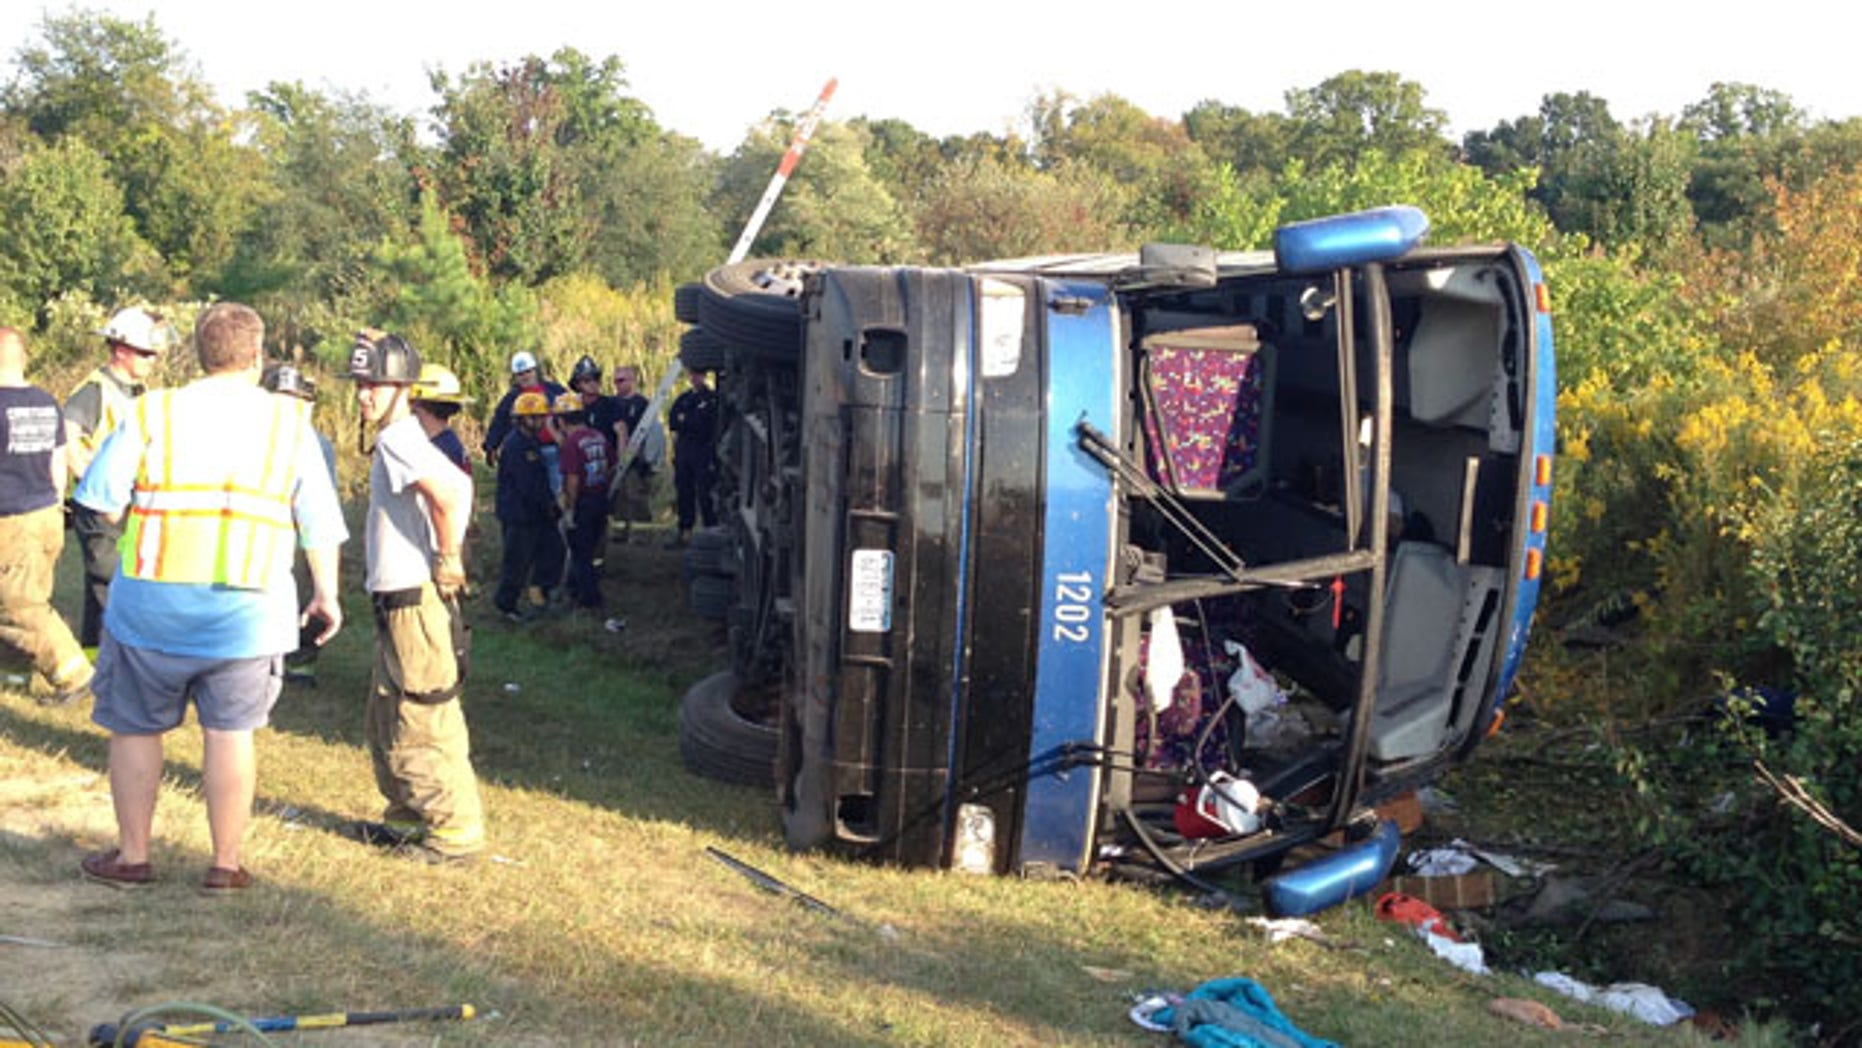 September 21, 2014: Passengers from a tour bus are treated for injuries near the overturned bus at the Tybouts Corner on ramp from southbound Del. 1 to Red Lion Road. (AP Photo/The Wilmington News-Journal, John J. Jankowski)